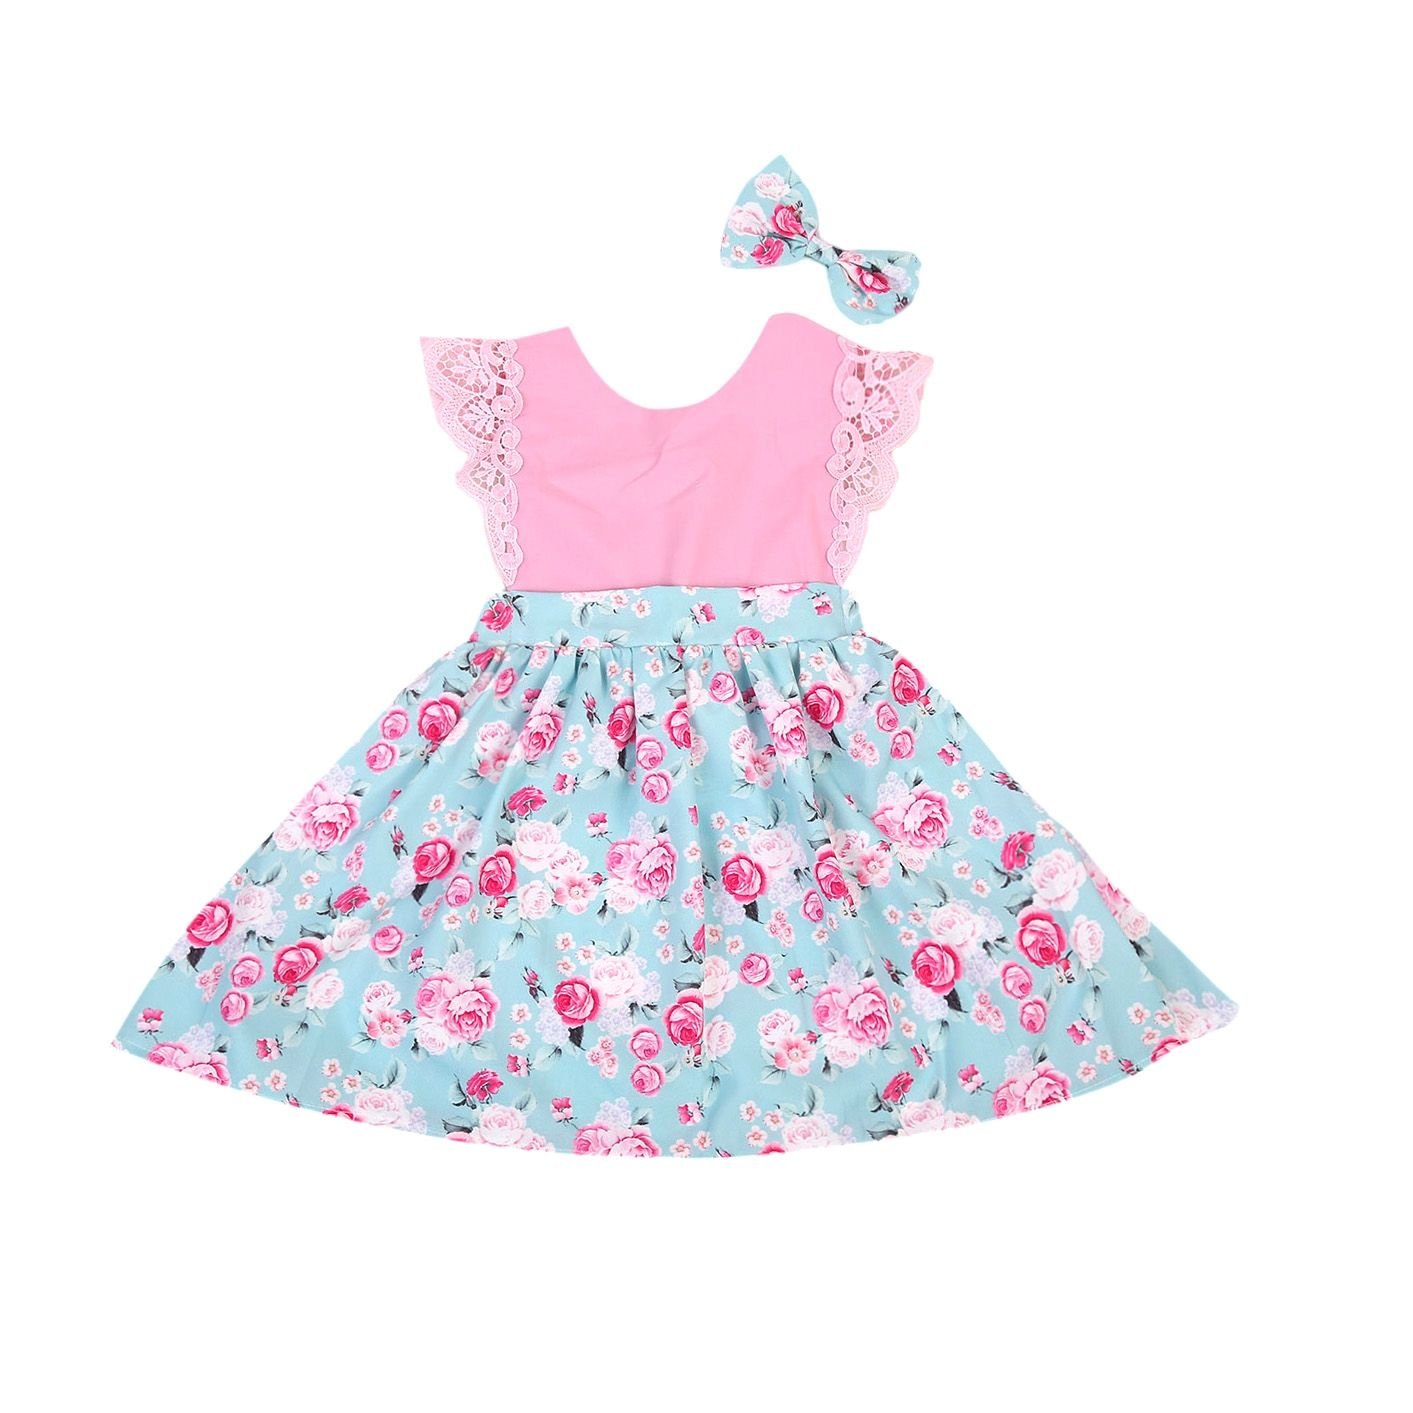 f88566fc9 2017 pudcoco Newest Arrivals Hot Infant Toddler Family Baby Girls ...